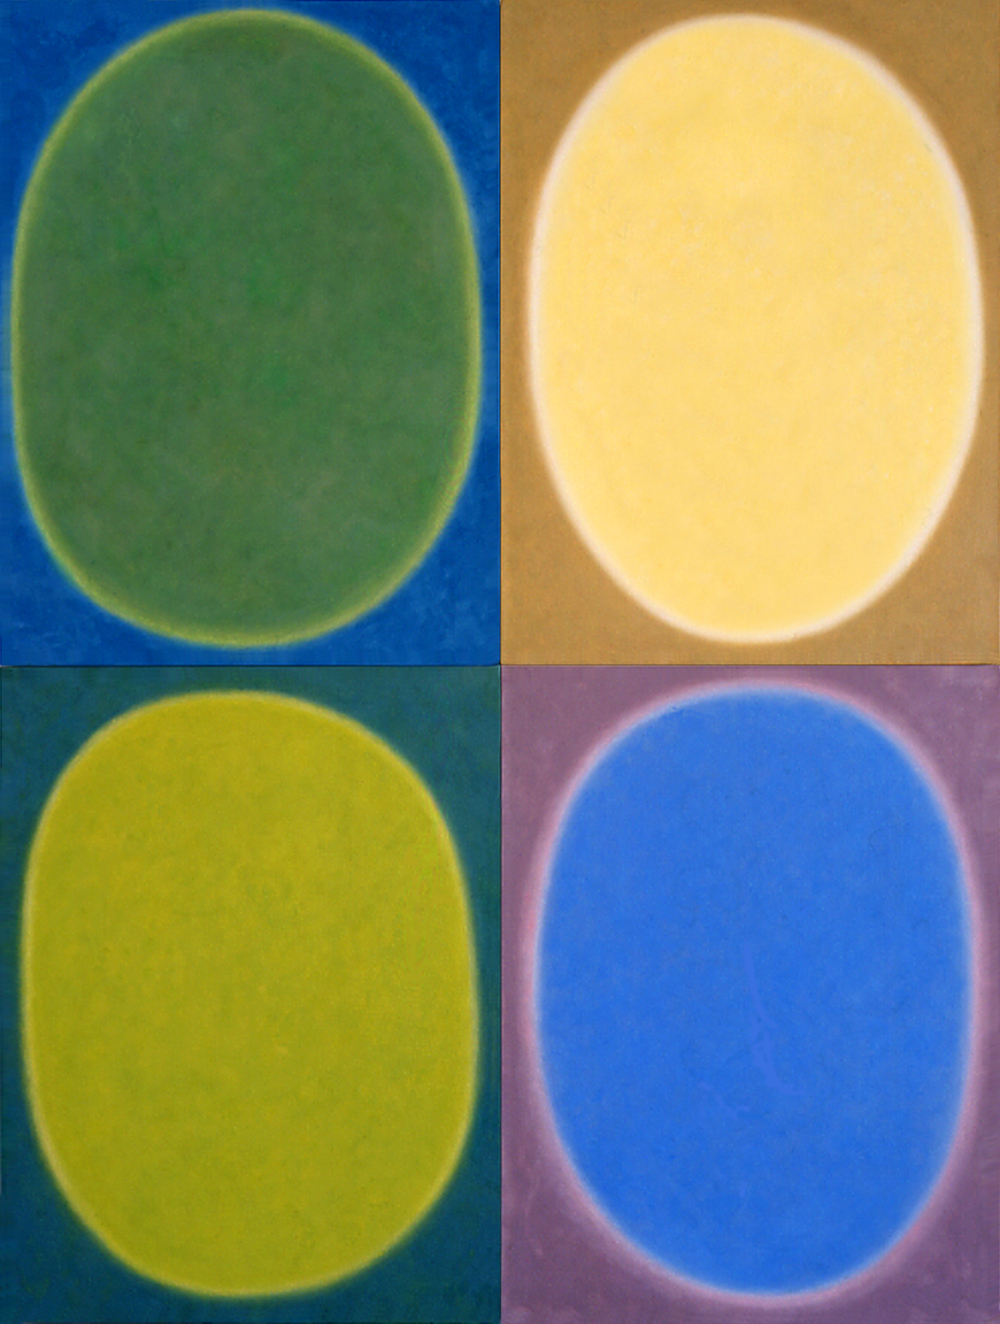 """Silent 11, oil on canvas, 2002, series of 4 panels W18"""" x H24"""" each, total format W36"""" x H48"""". Private collection."""